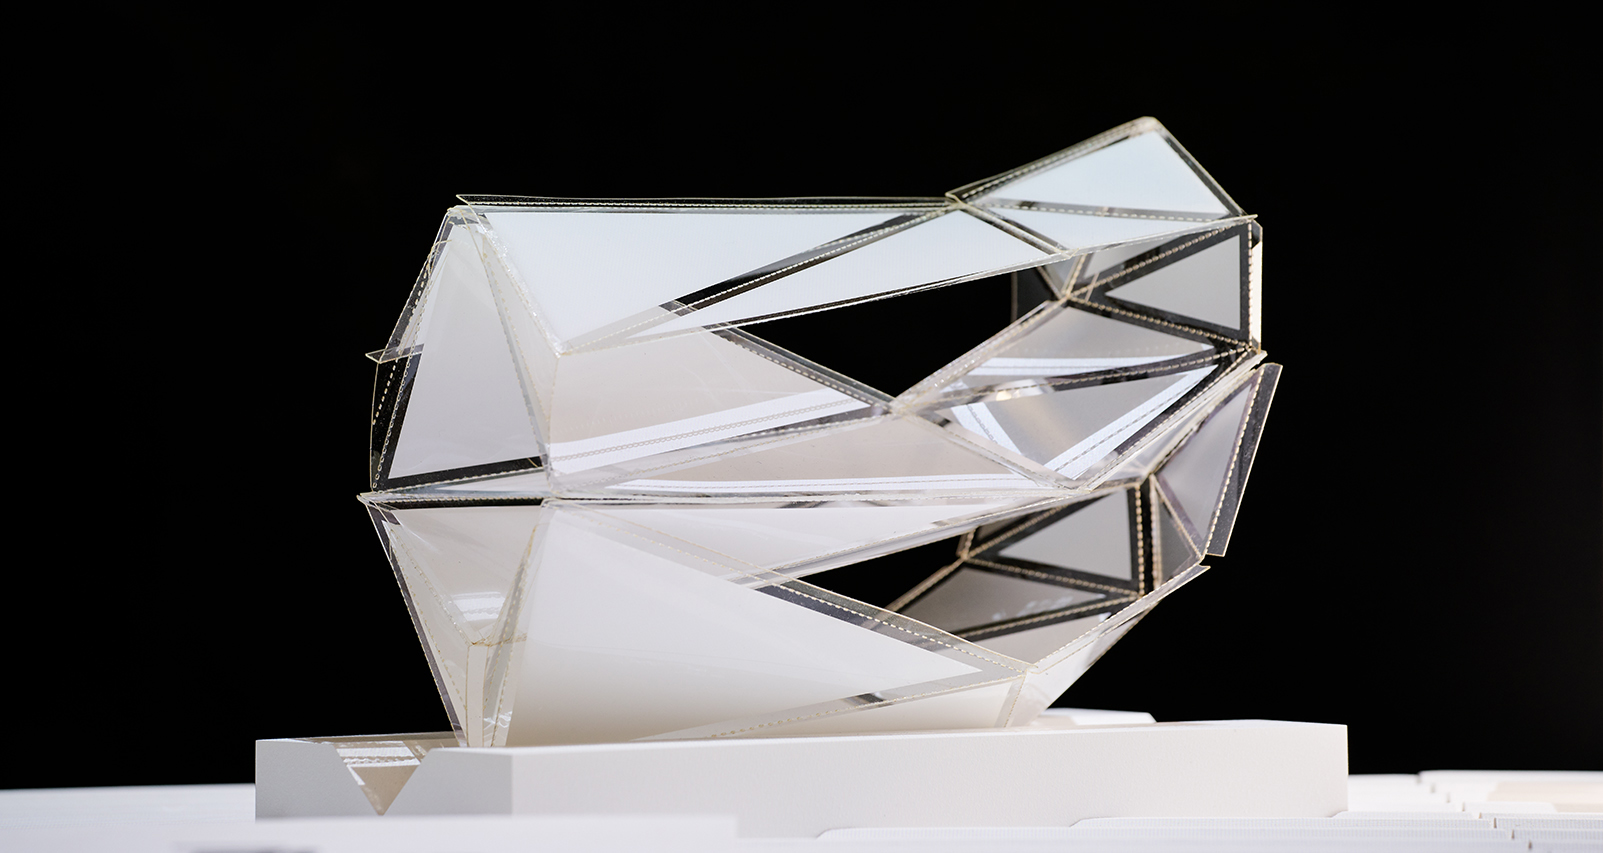 A prototype of the design| Lexus design Award| STIR